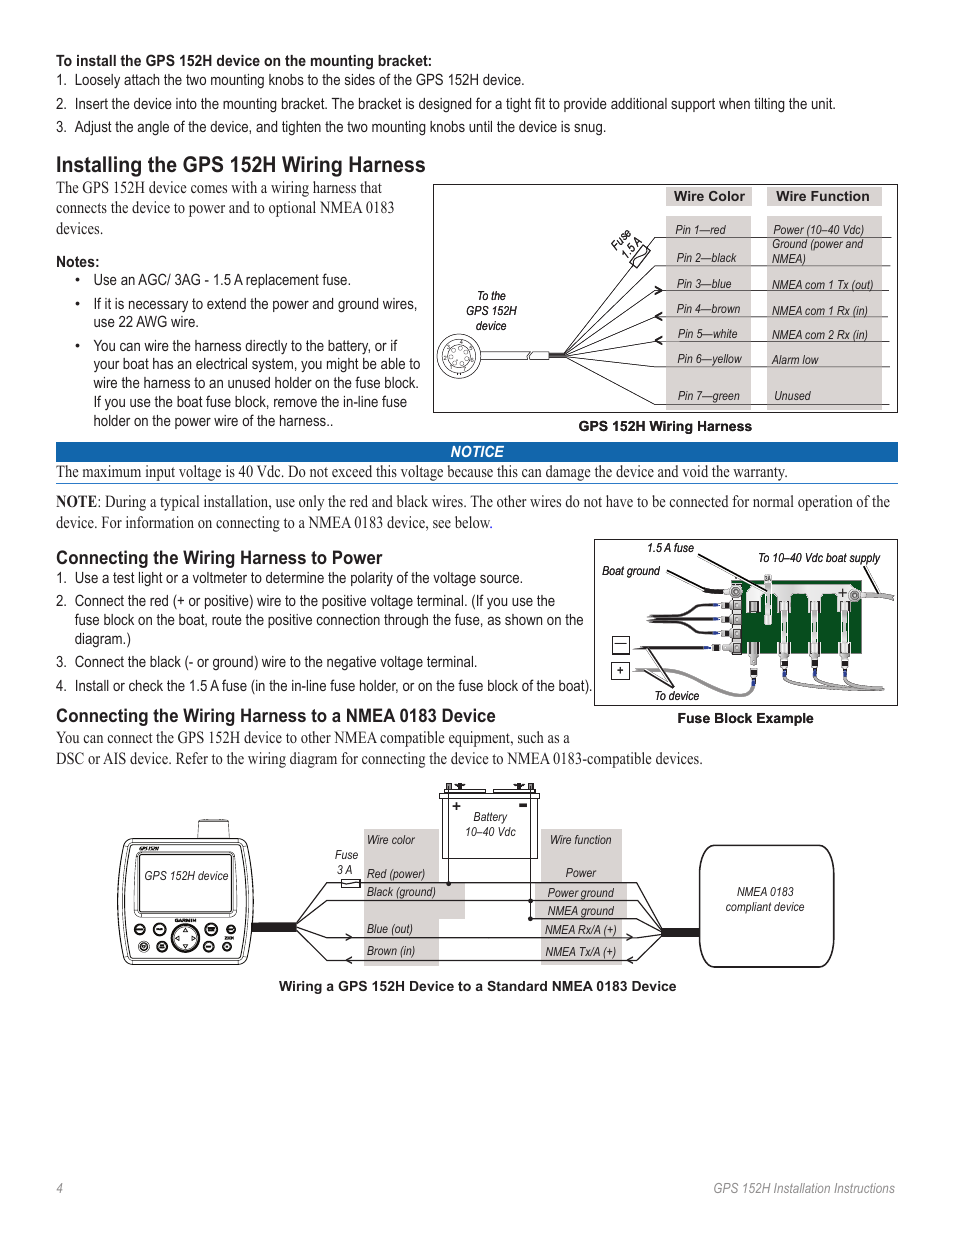 Garmin 5212 Wiring Diagram Gps 152 Free Download Installing The 152h Harness Connecting 7 Pin At